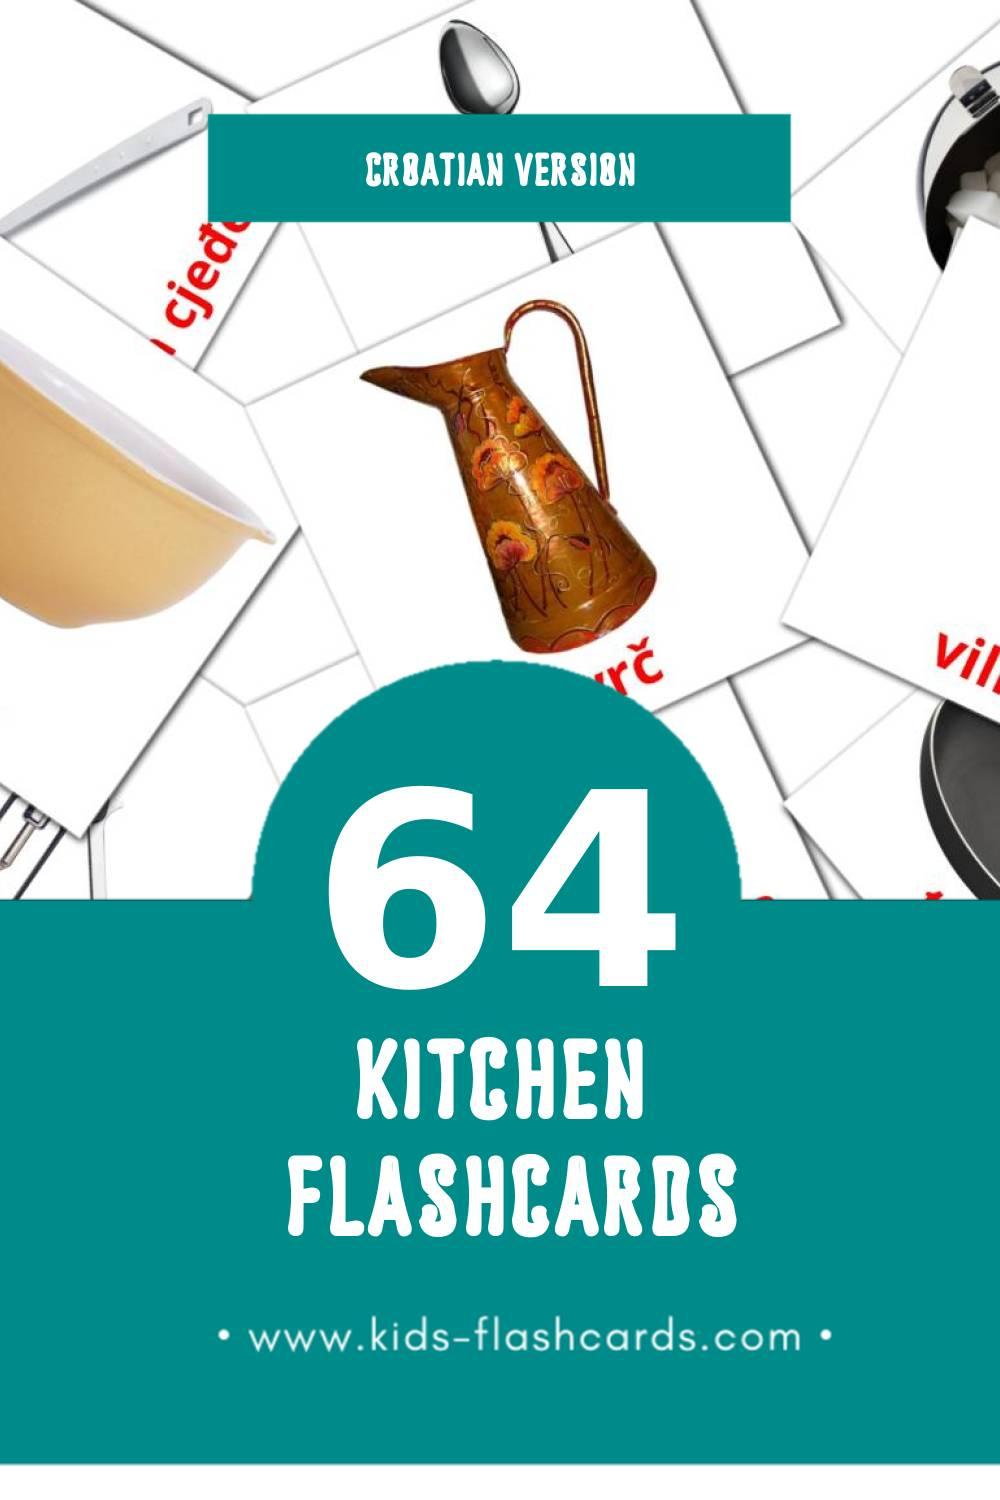 Visual Kuhinja Flashcards for Toddlers (64 cards in Croatian)